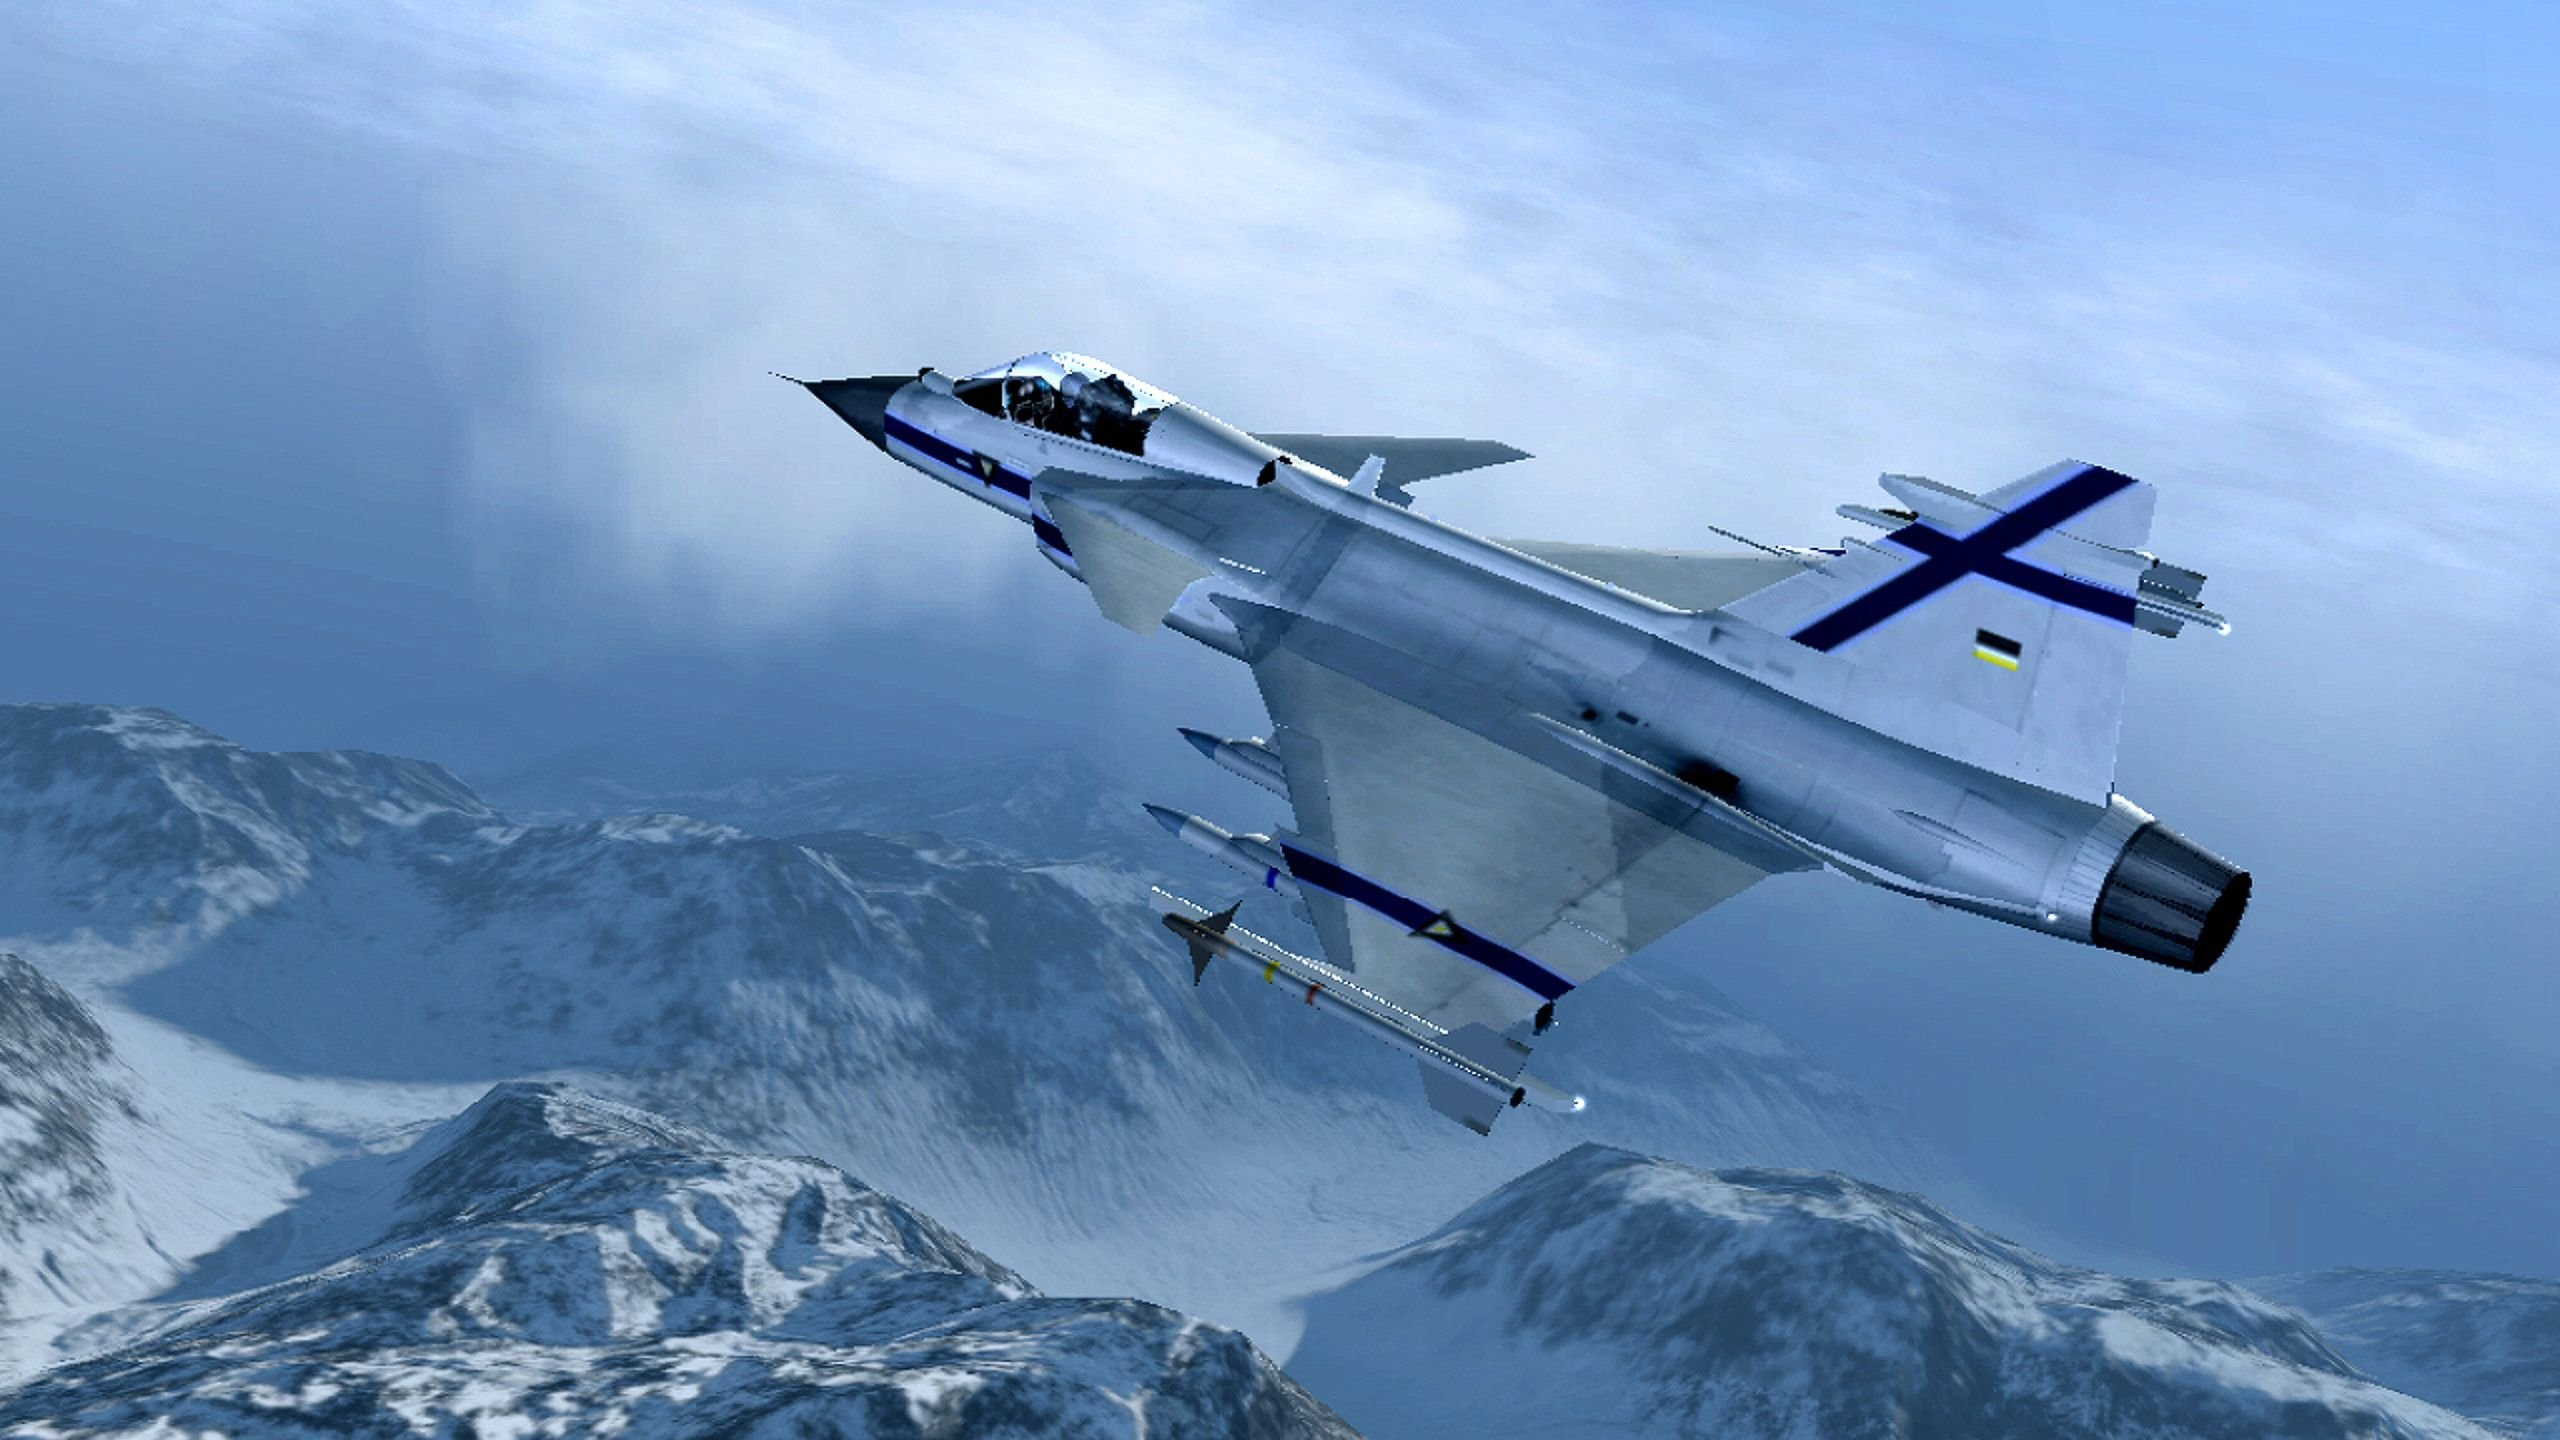 Awesome Ace Combat Zero: The Belkan War free wallpaper ID:150731 for hd 2560x1440 desktop